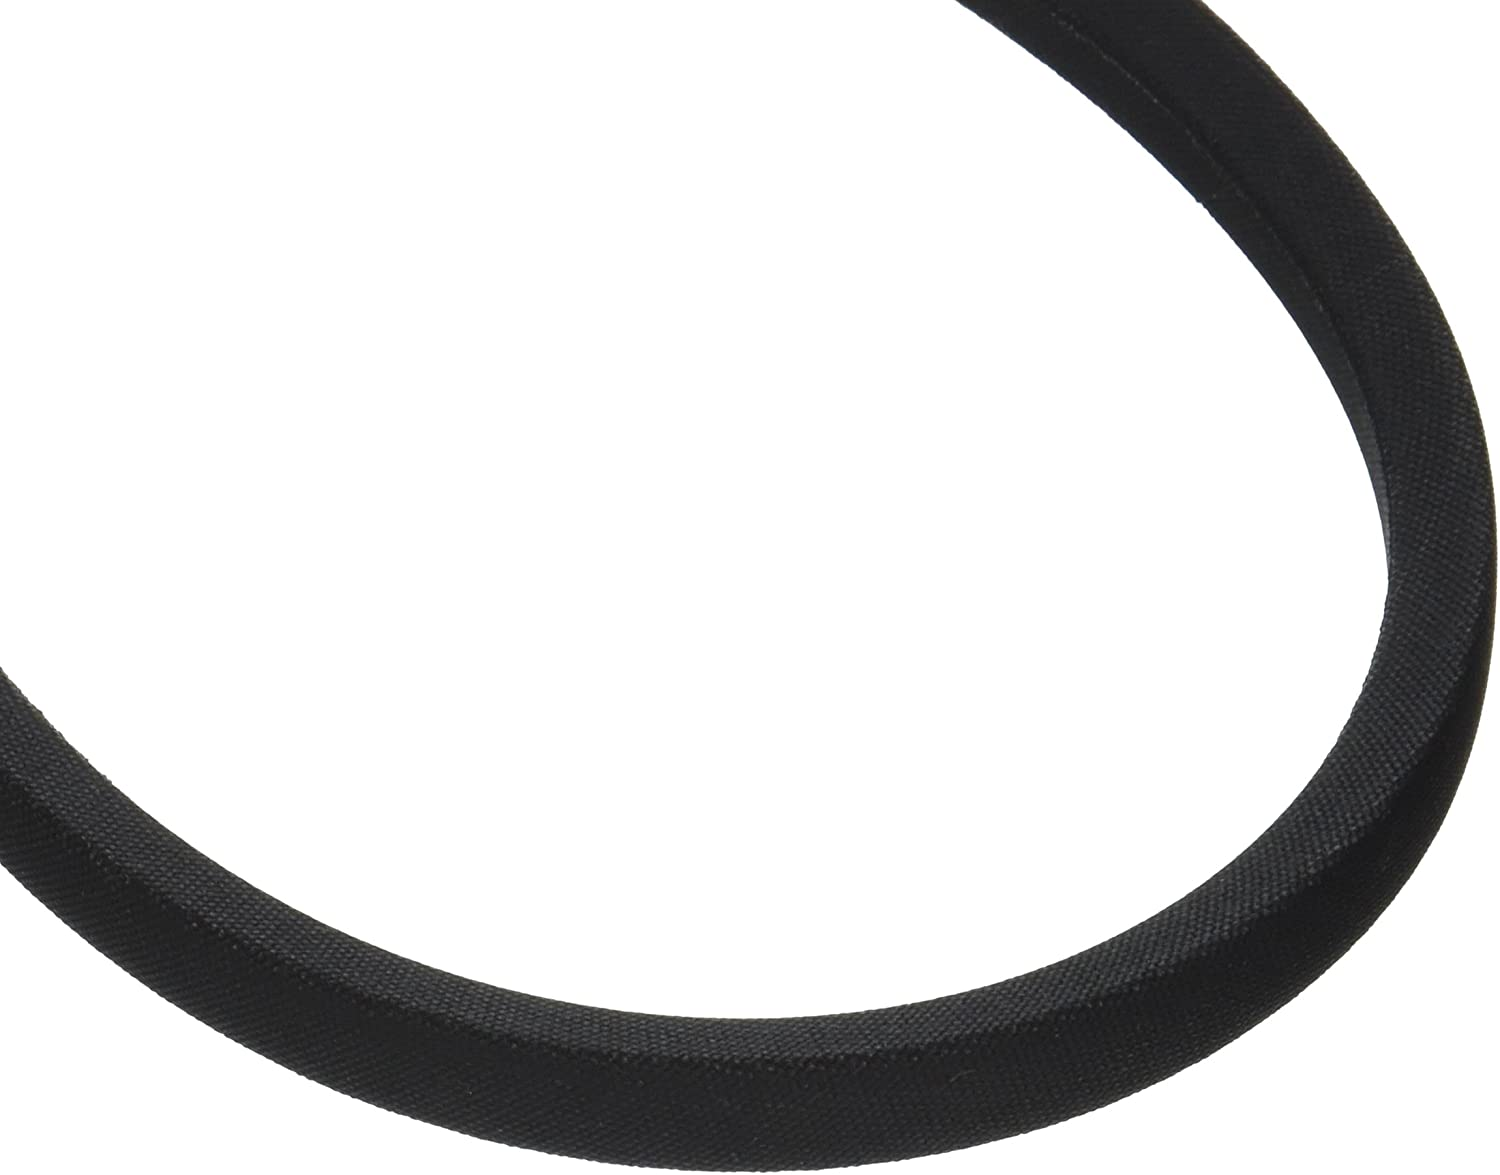 Kenmore 134511600 Washer Drive Belt